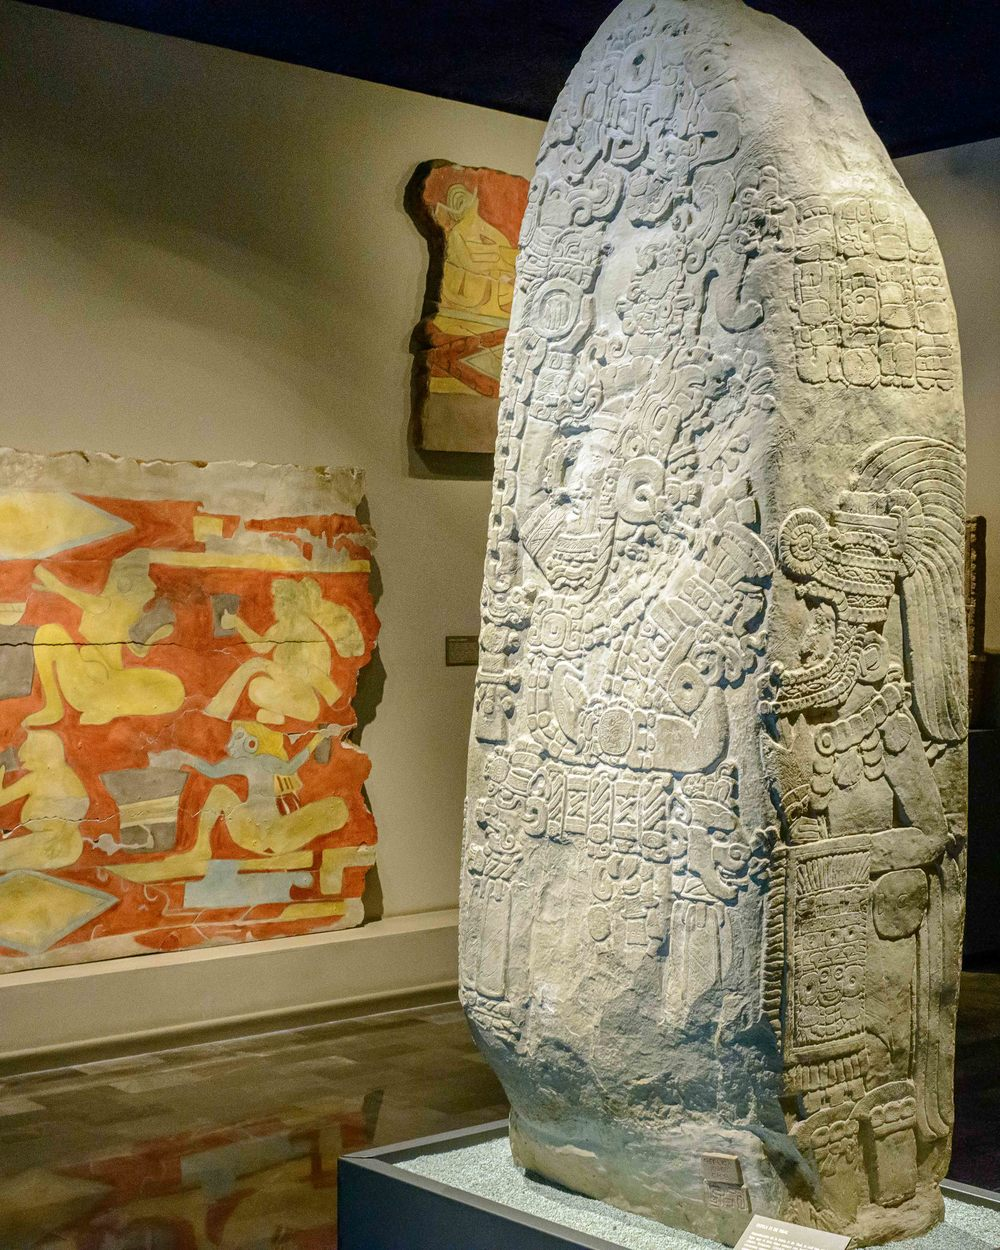 Reproduction of Stele 31 of Tikal, which reveals that the area of Teotihuacan had contact with Mayas during the Early Classic ( 250-650 bC ).